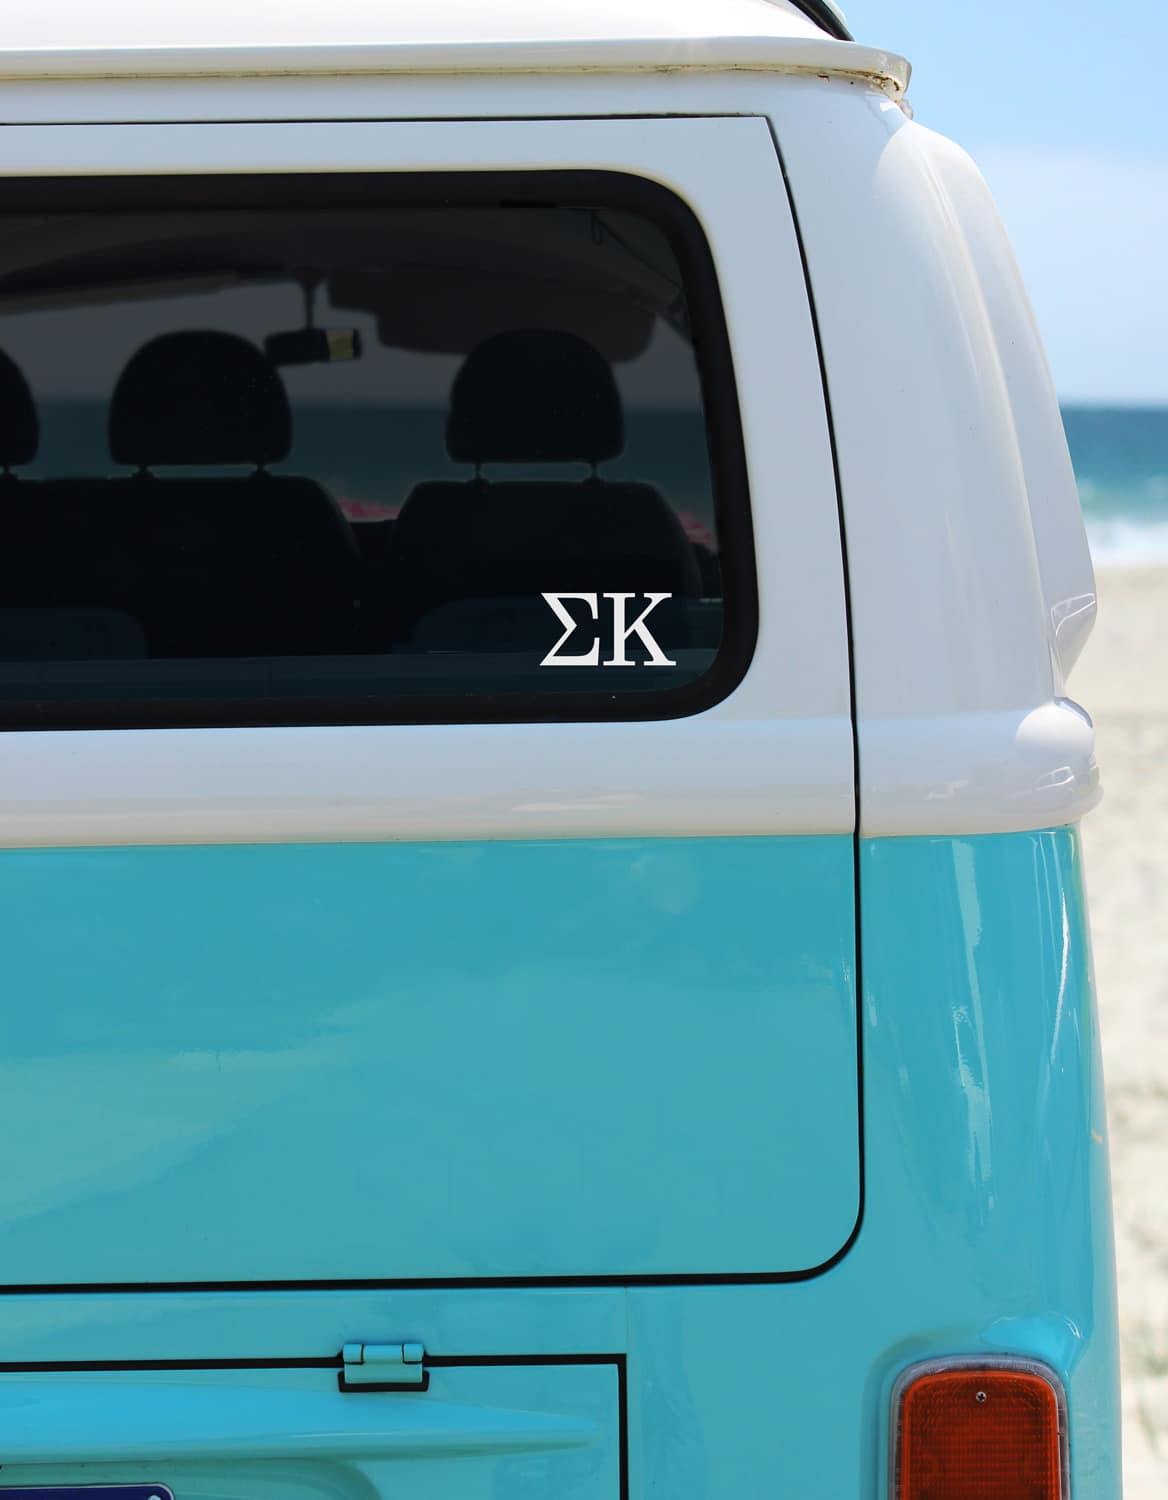 Sigma Kappa Decal on Van window